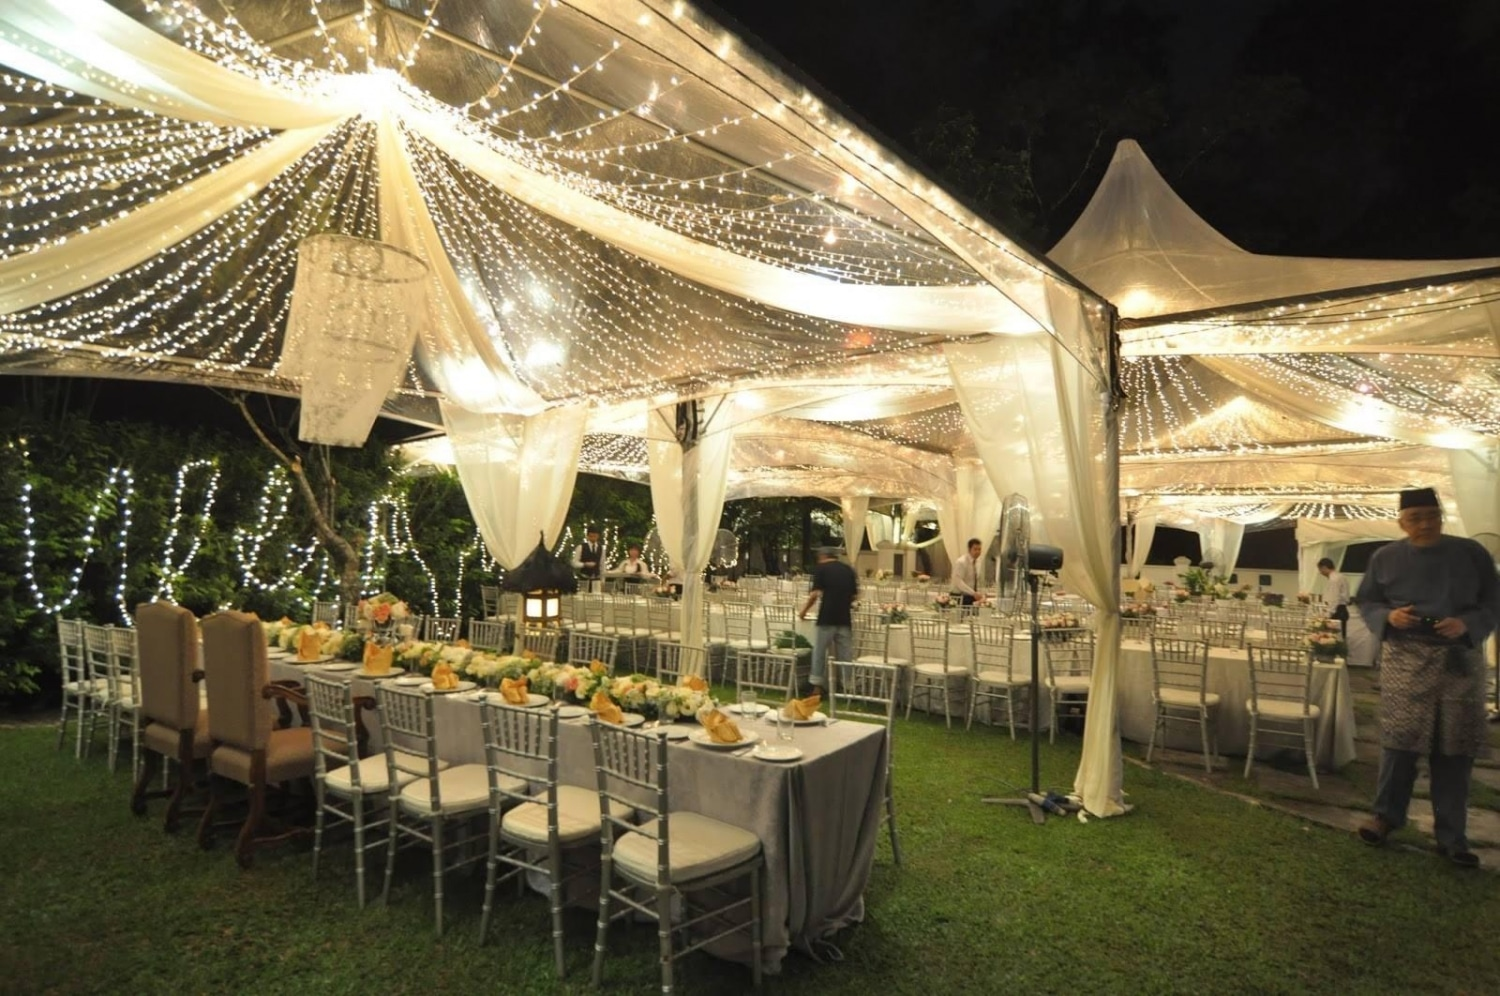 Transparent Gazebo tent with fairy lights